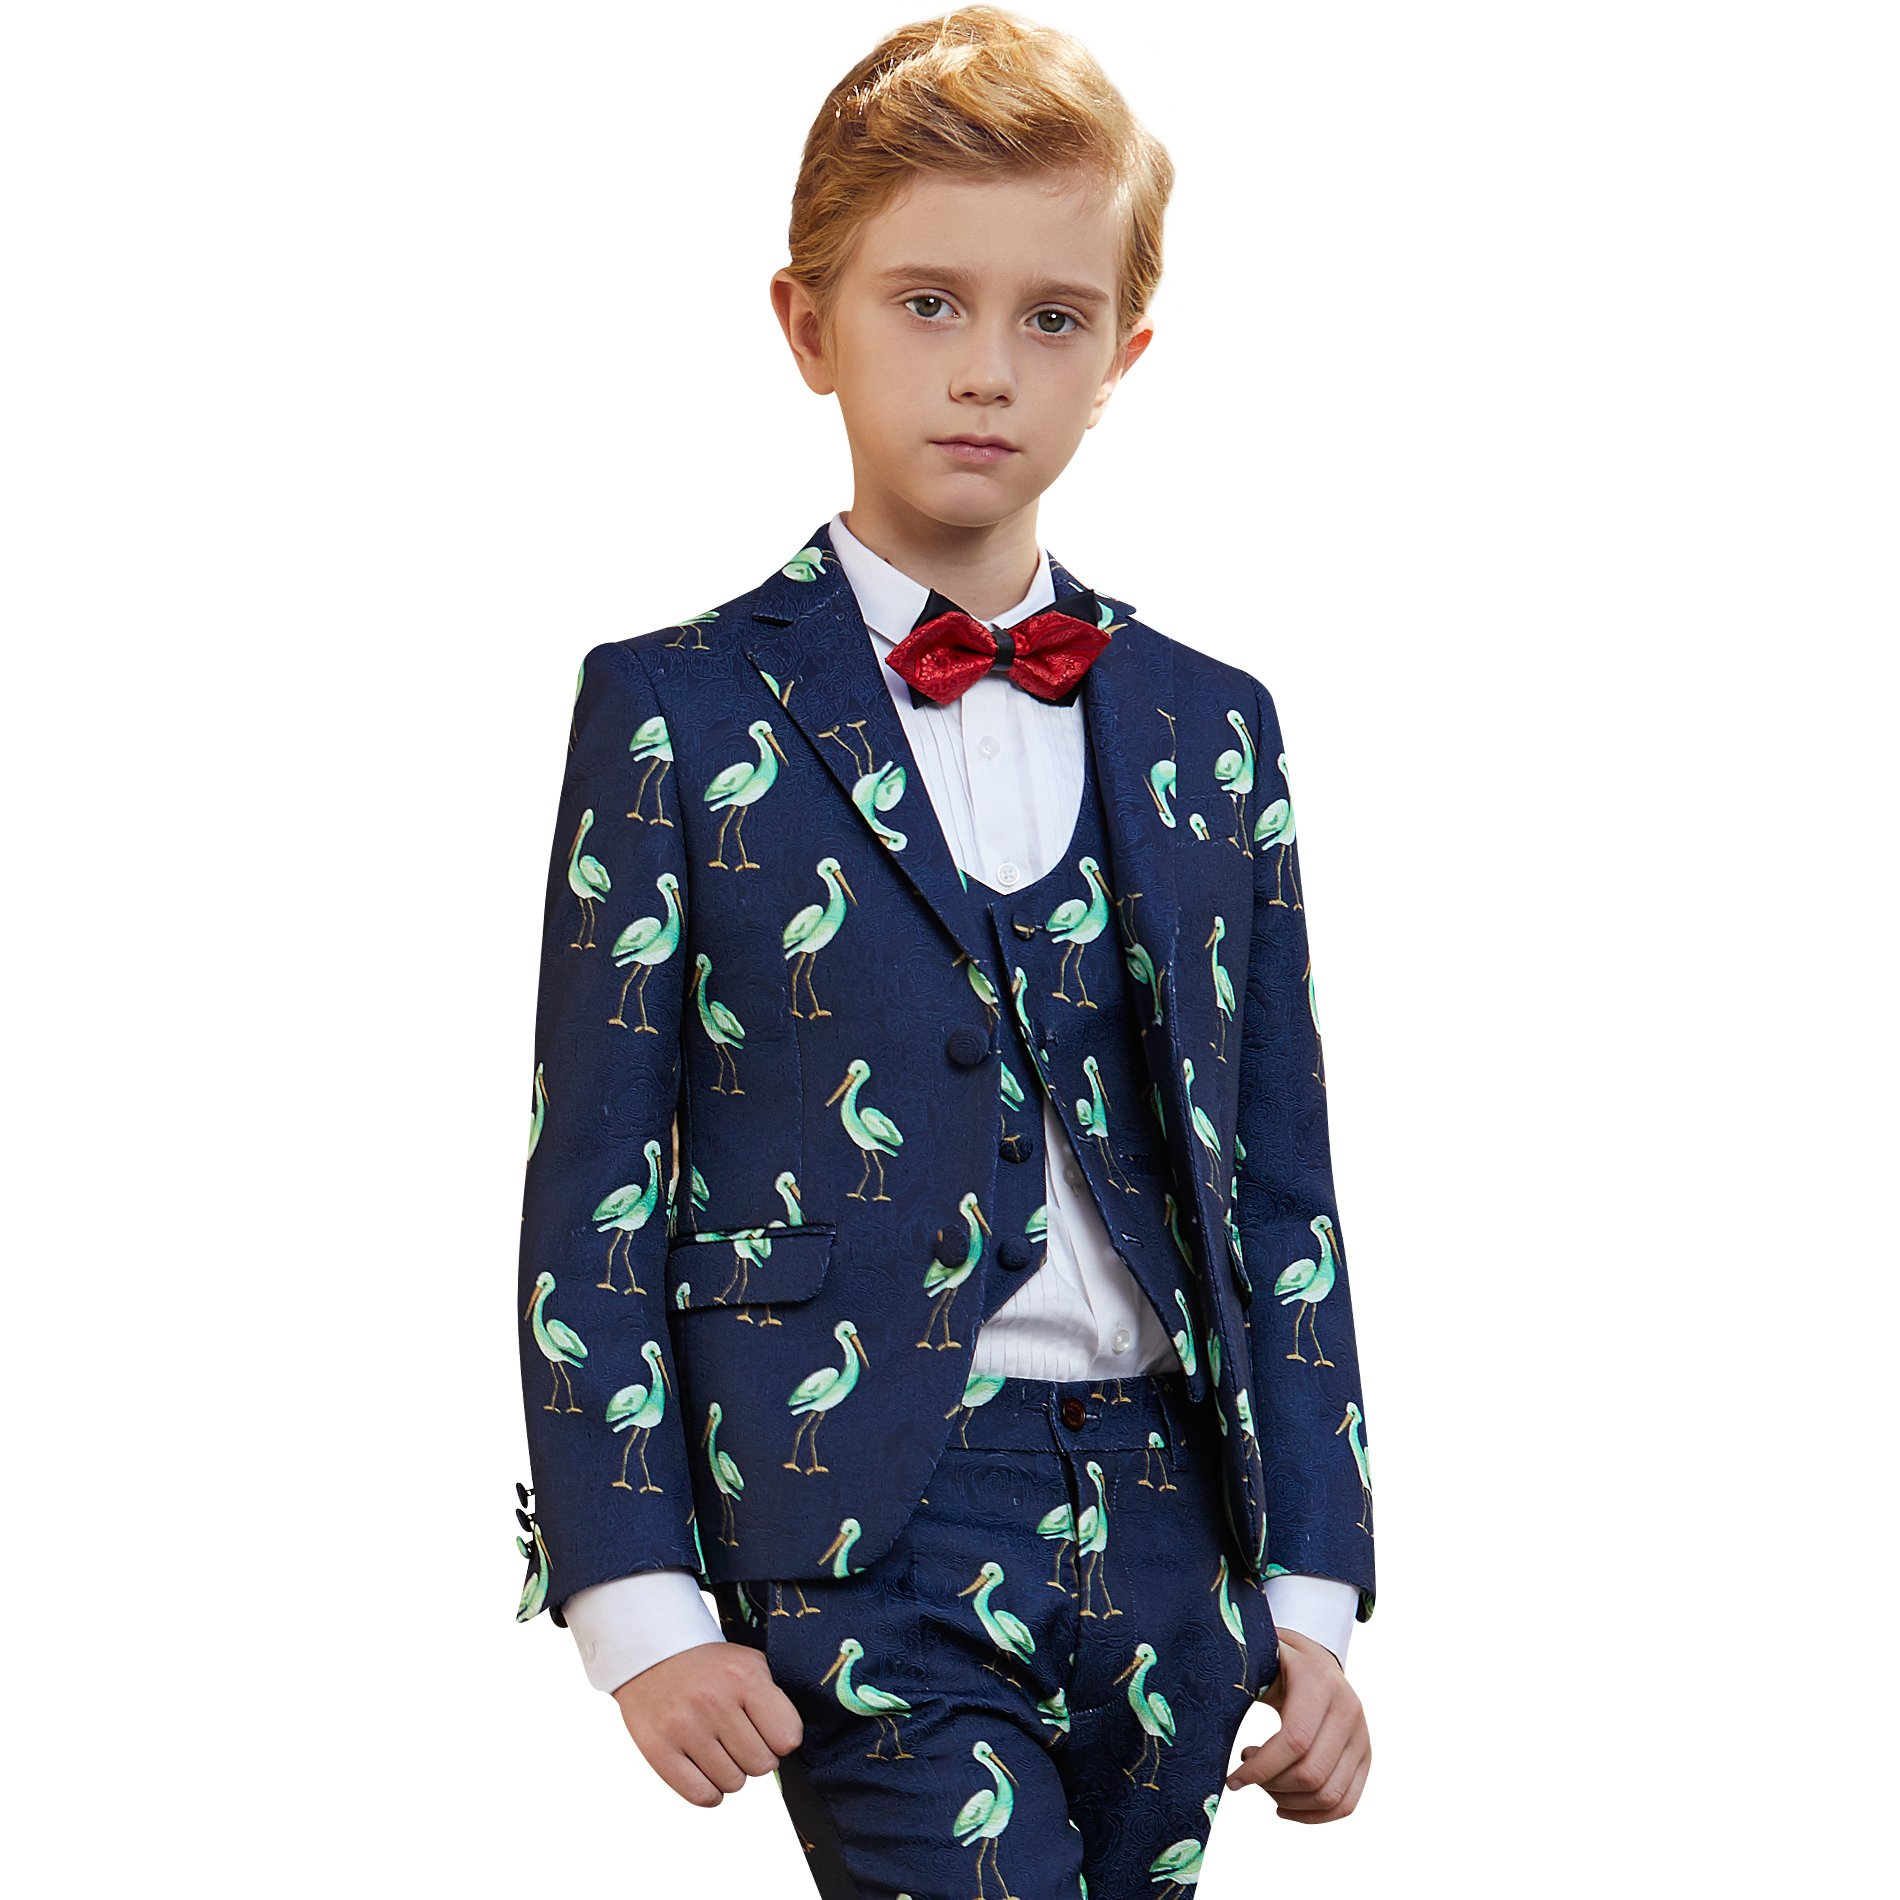 ELPA ELPA Boys Slim Fit 8 Piece Suits Formal Outfit Creative Design Dress Set Green Embroidery Blazer White Vest Pants (8)